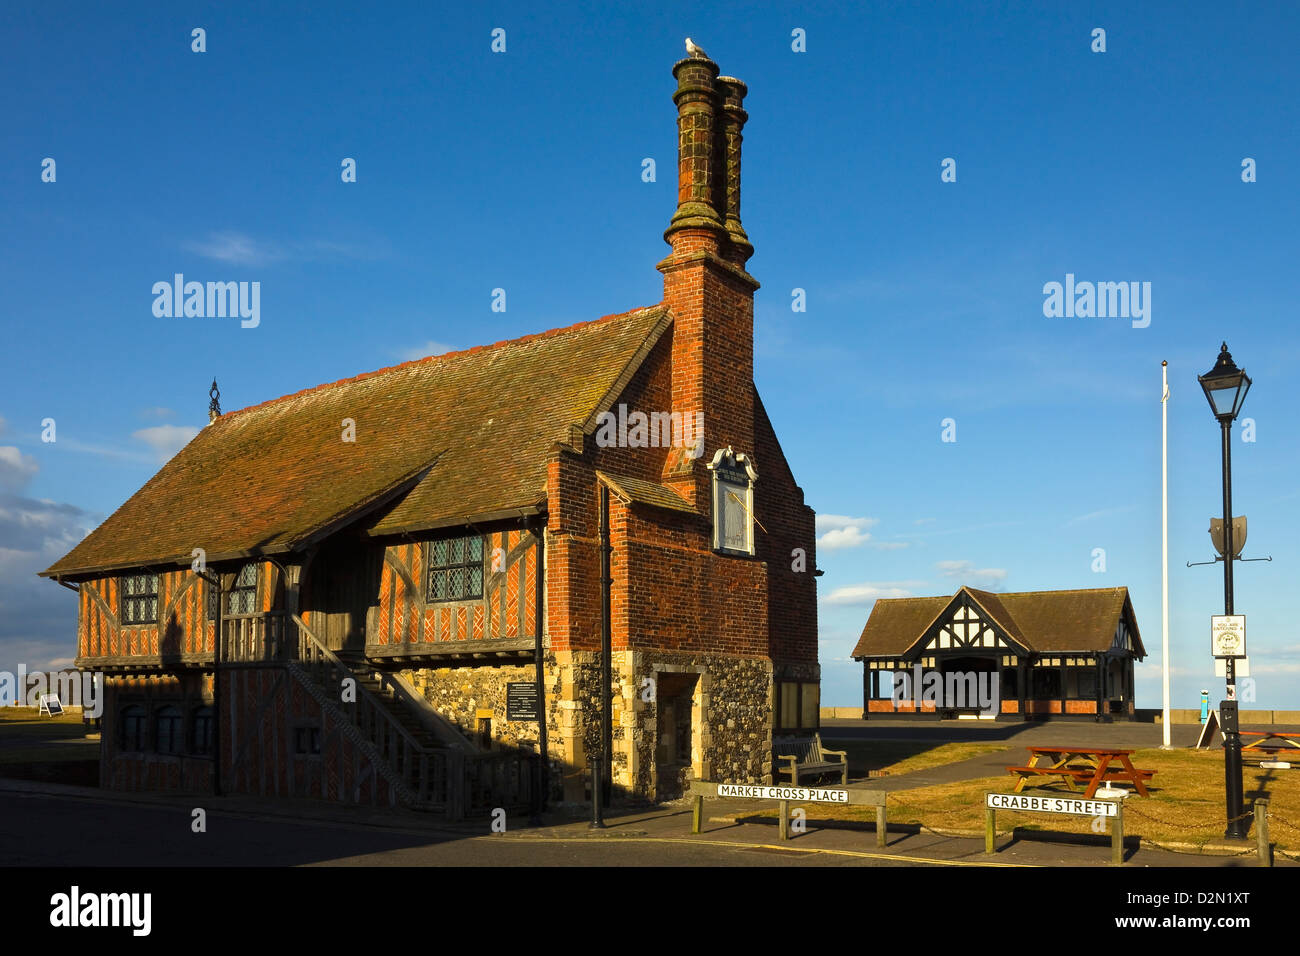 Moot Hall, a Grade I listed building, formerly a meeting hall, now a museum, Aldeburgh, Suffolk, England, UK - Stock Image